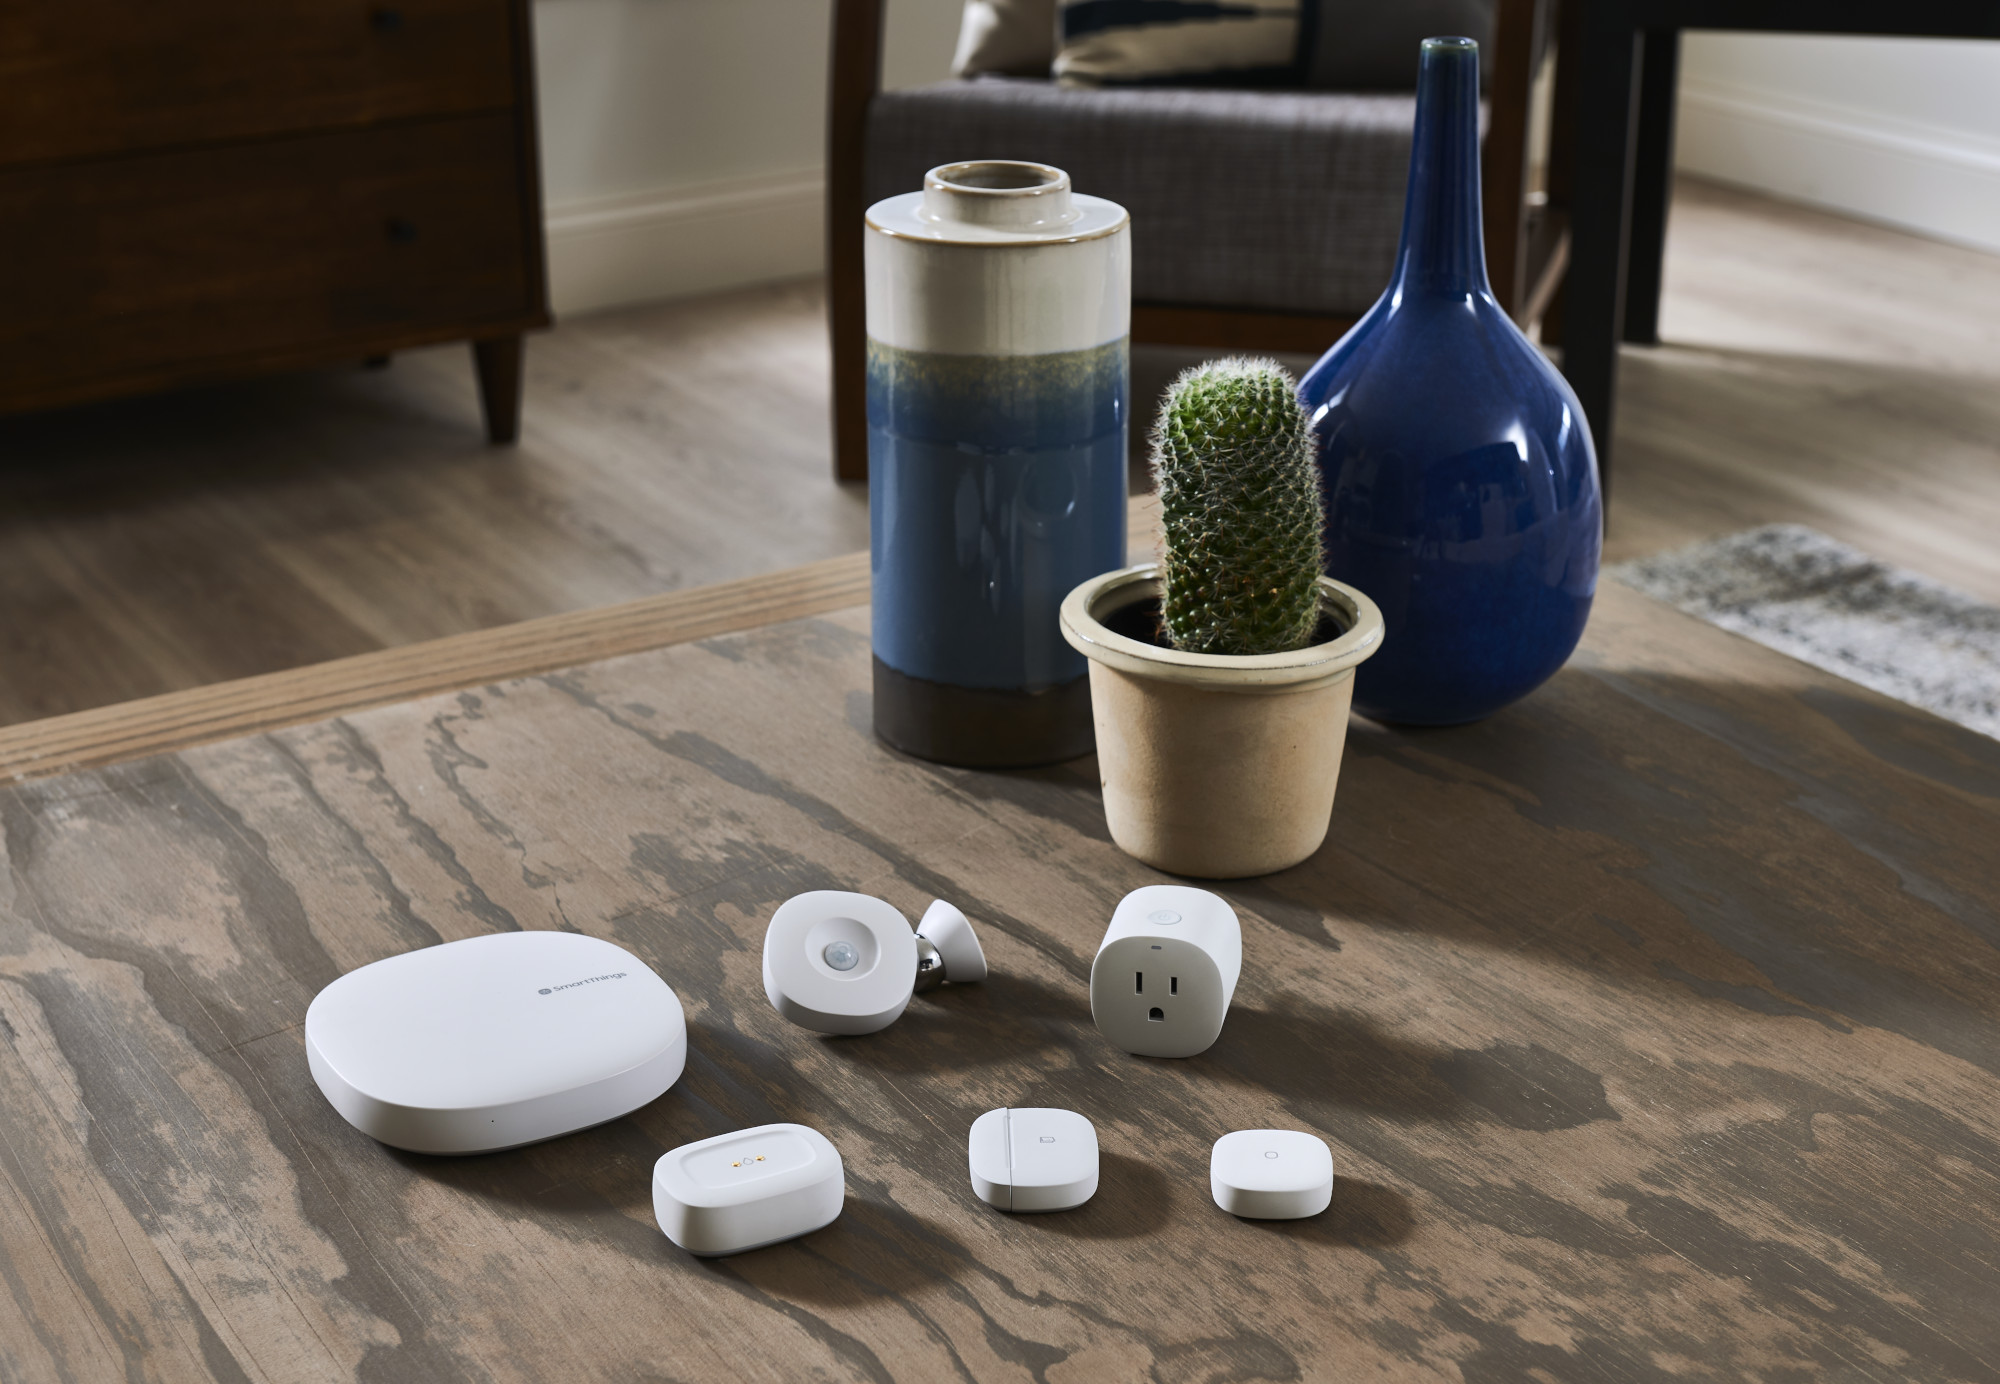 SmartThings ECO System - Lifestyle Images